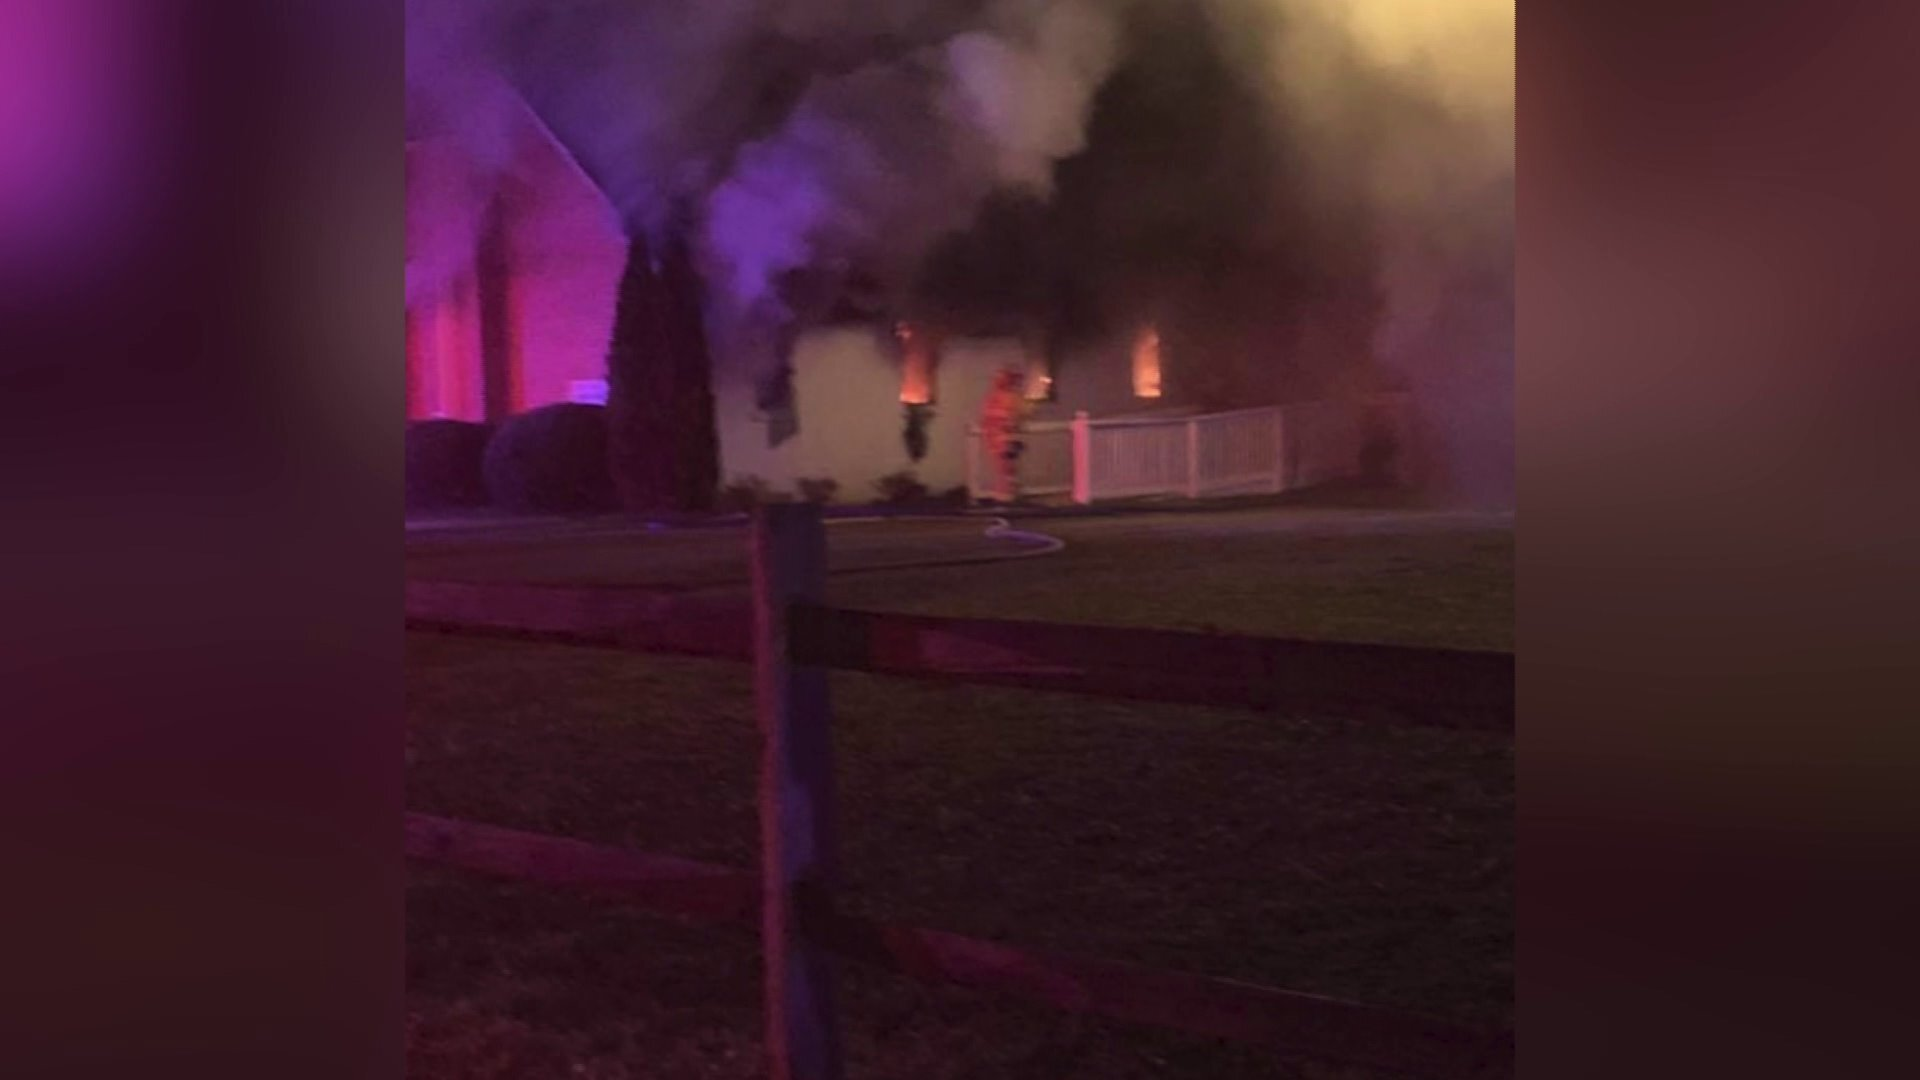 Photos: Hopewell church fire ruled arson; blaze started in sanctuary, pastor says